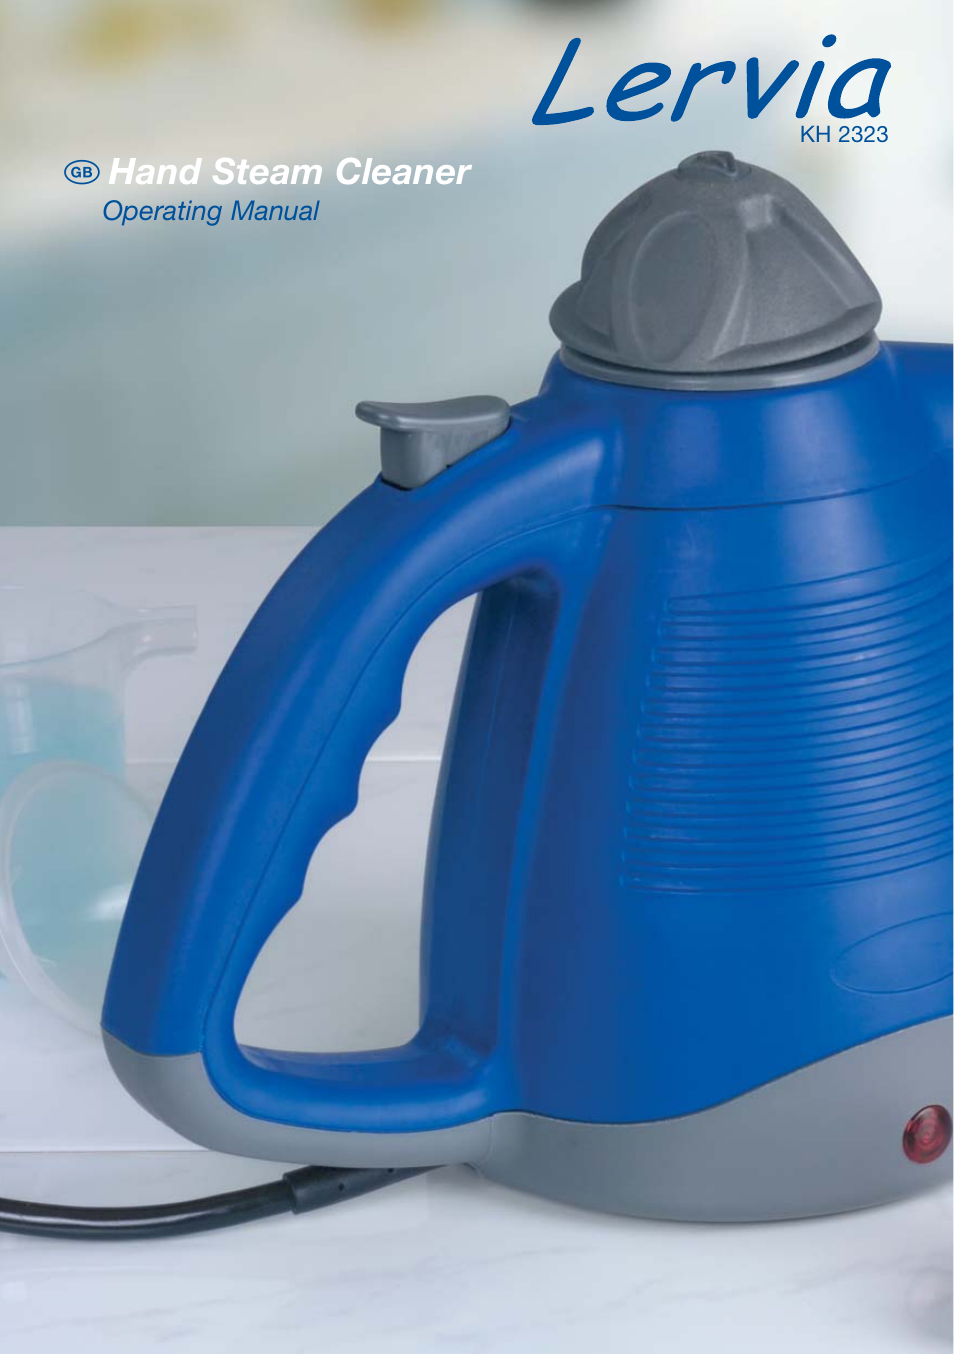 kompernass hand steam cleaner kh 2323 user manual